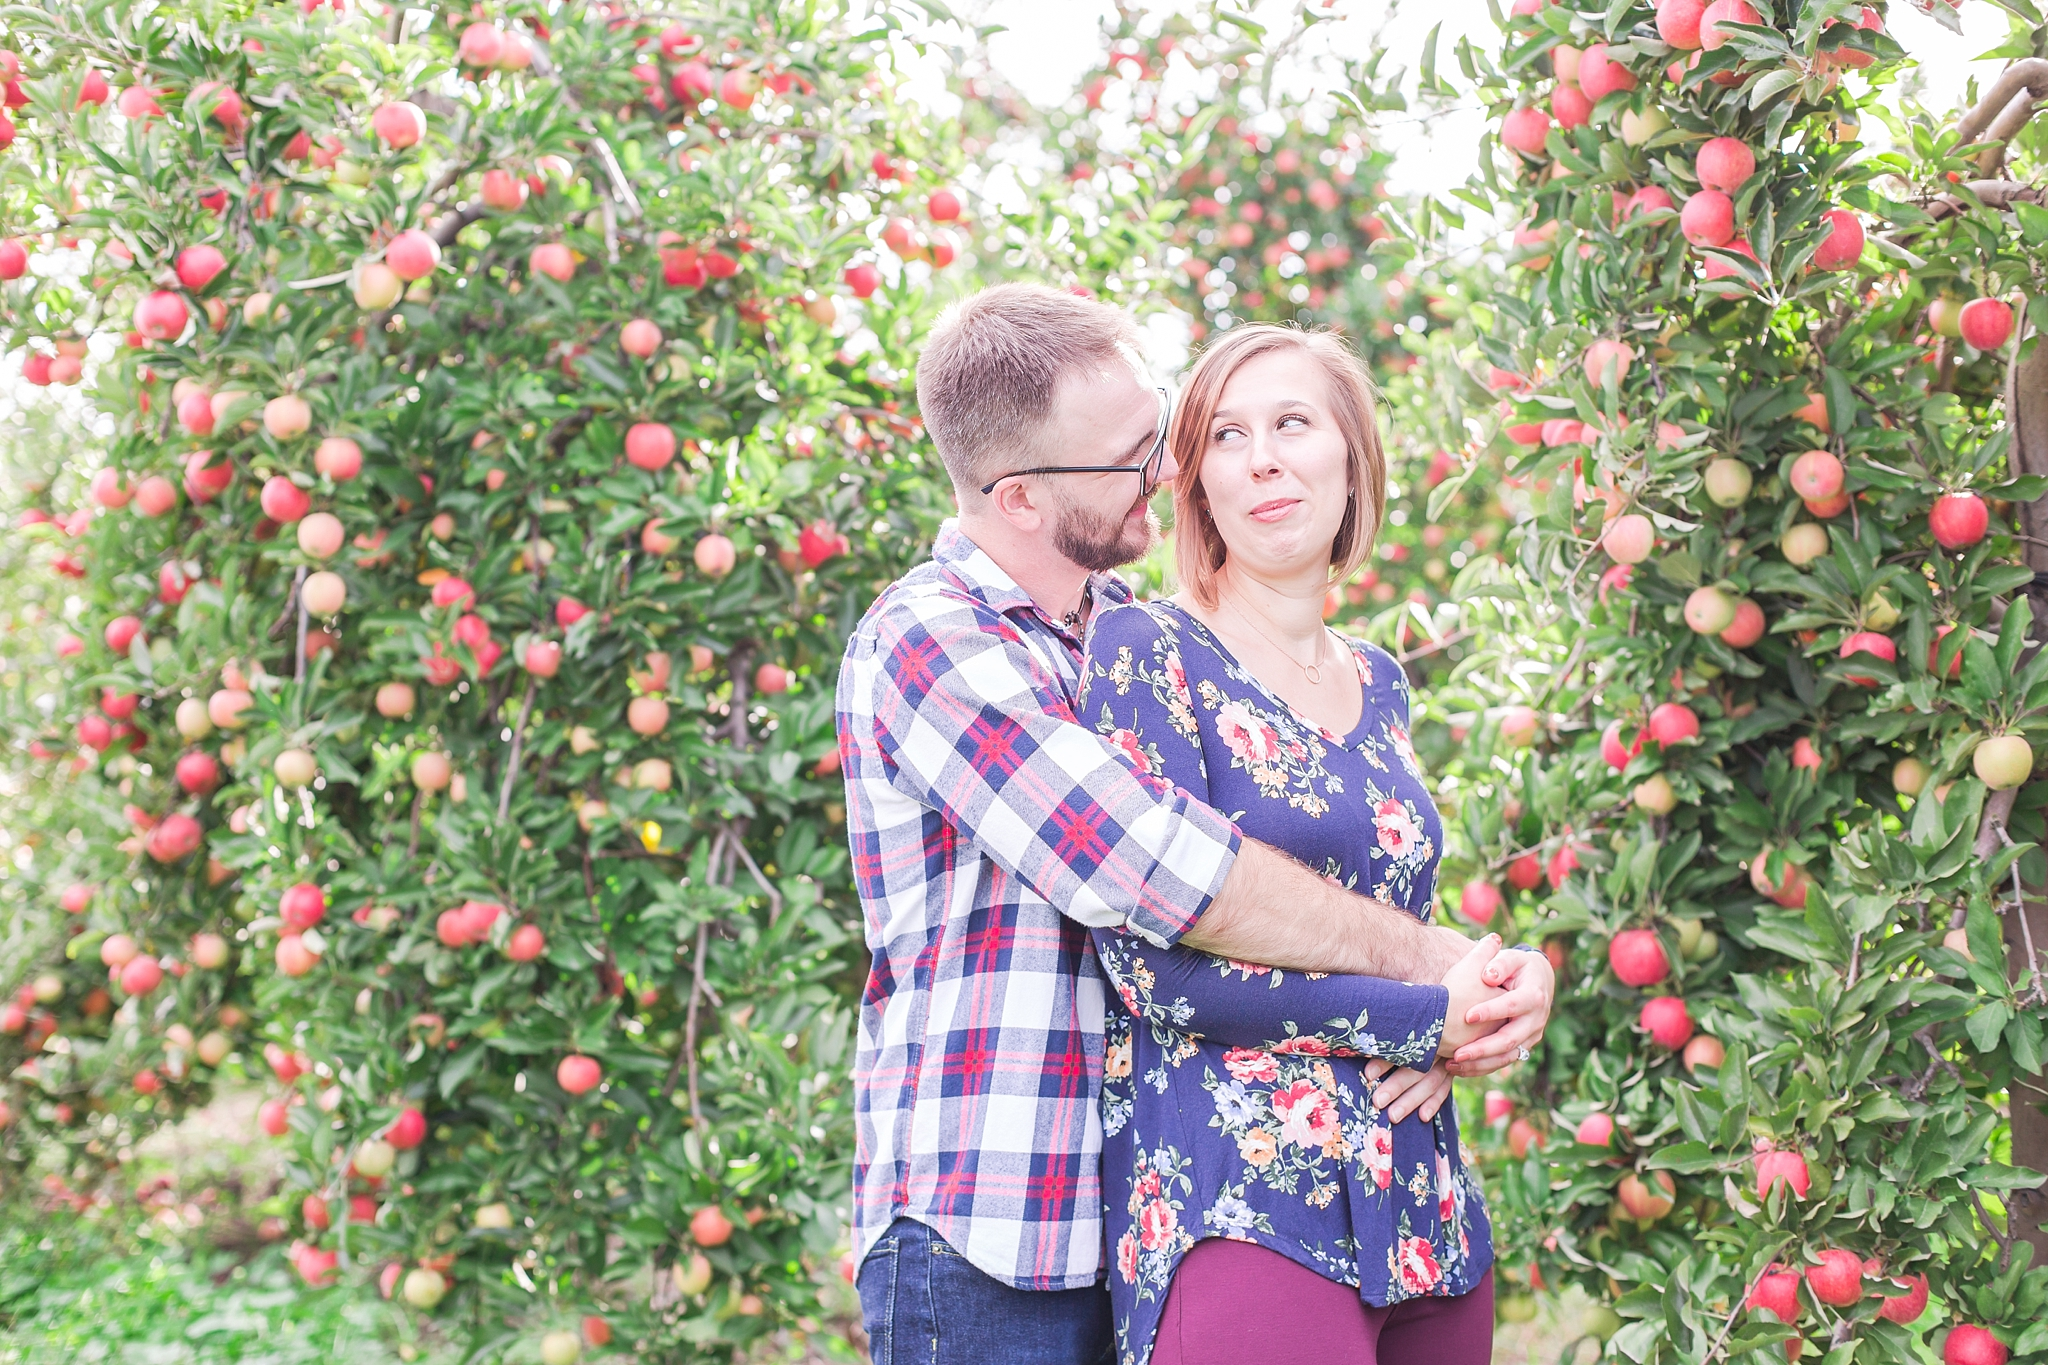 playful-fall-engagement-photos-at-hy's-cider-mill-ochard-in-bruce-township-michigan-by-courtney-carolyn-photography_0012.jpg